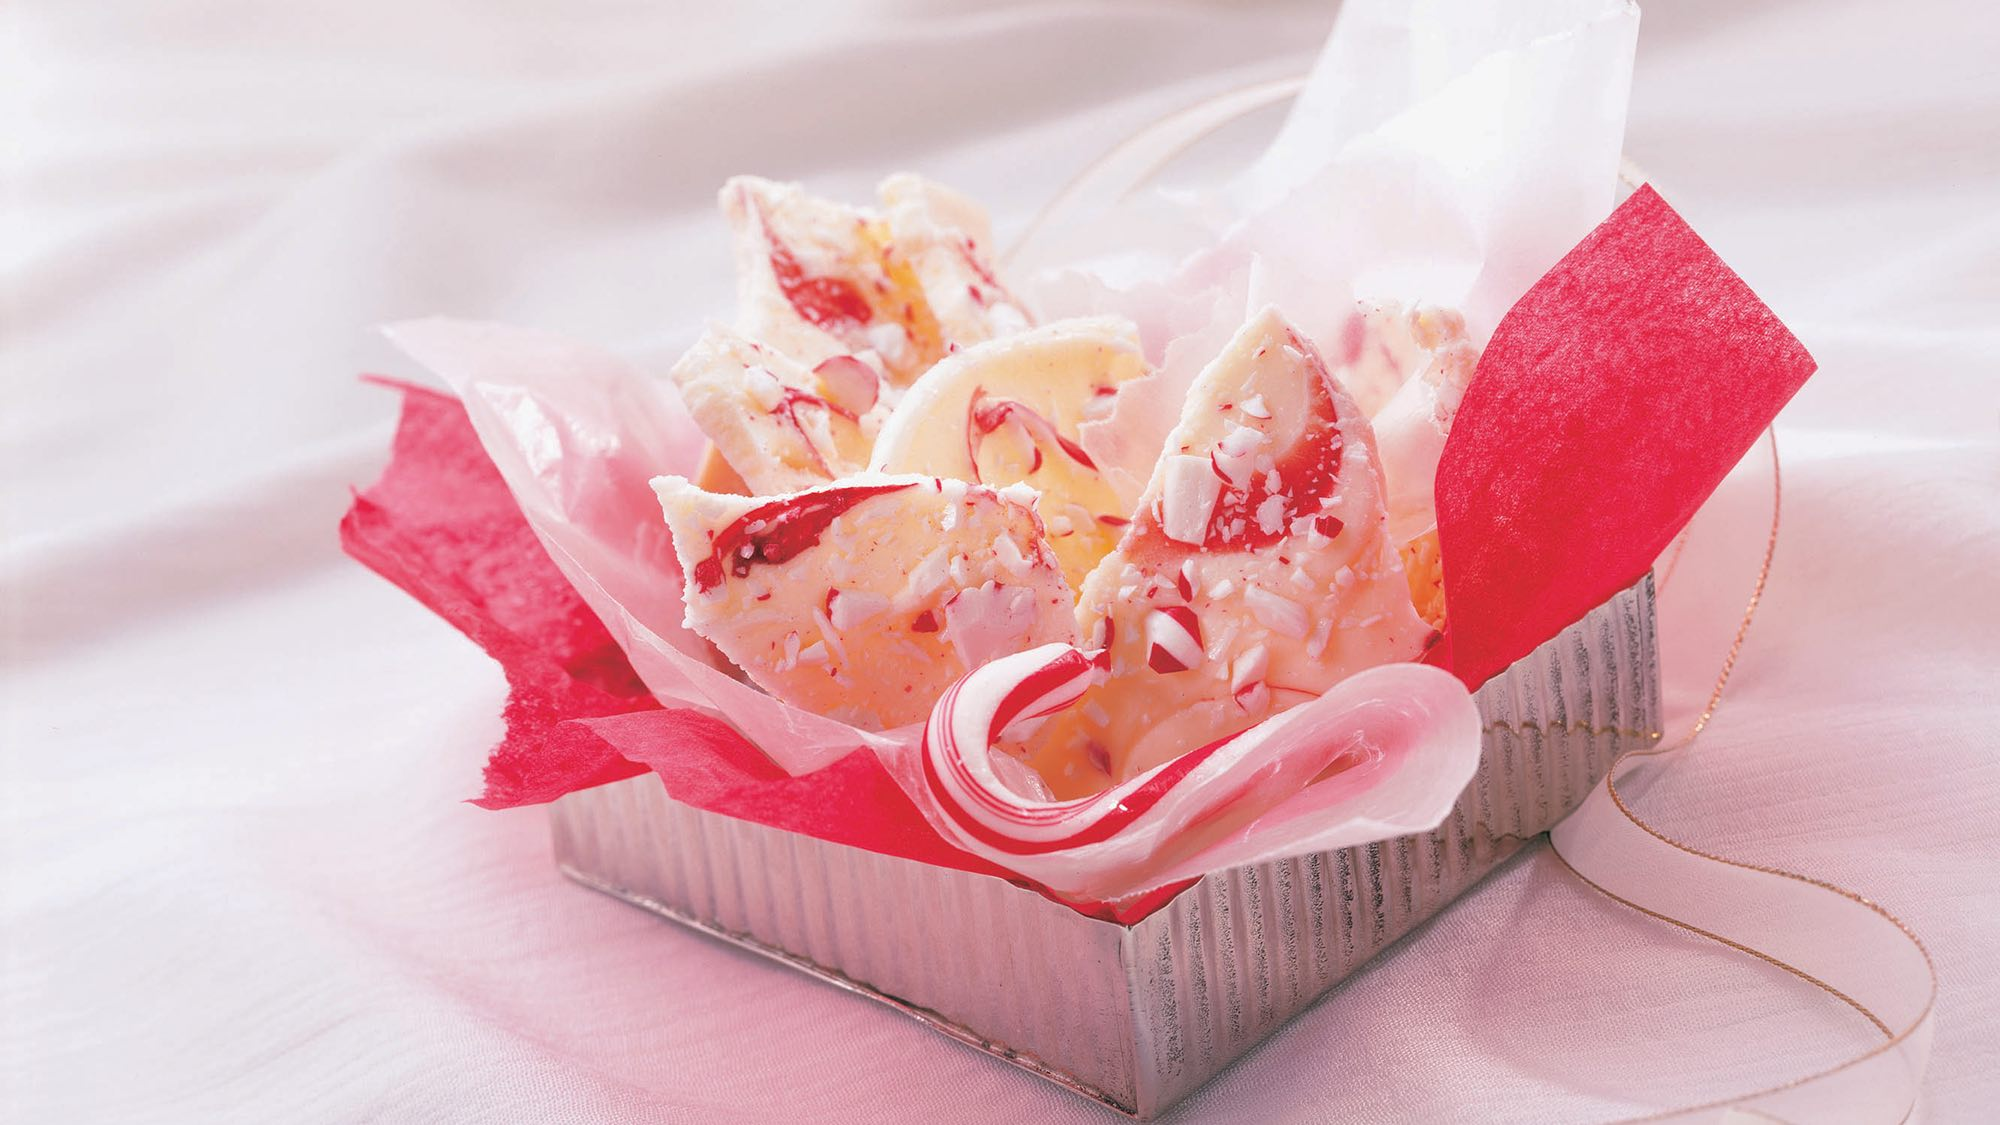 McCormick Peppermint Bark